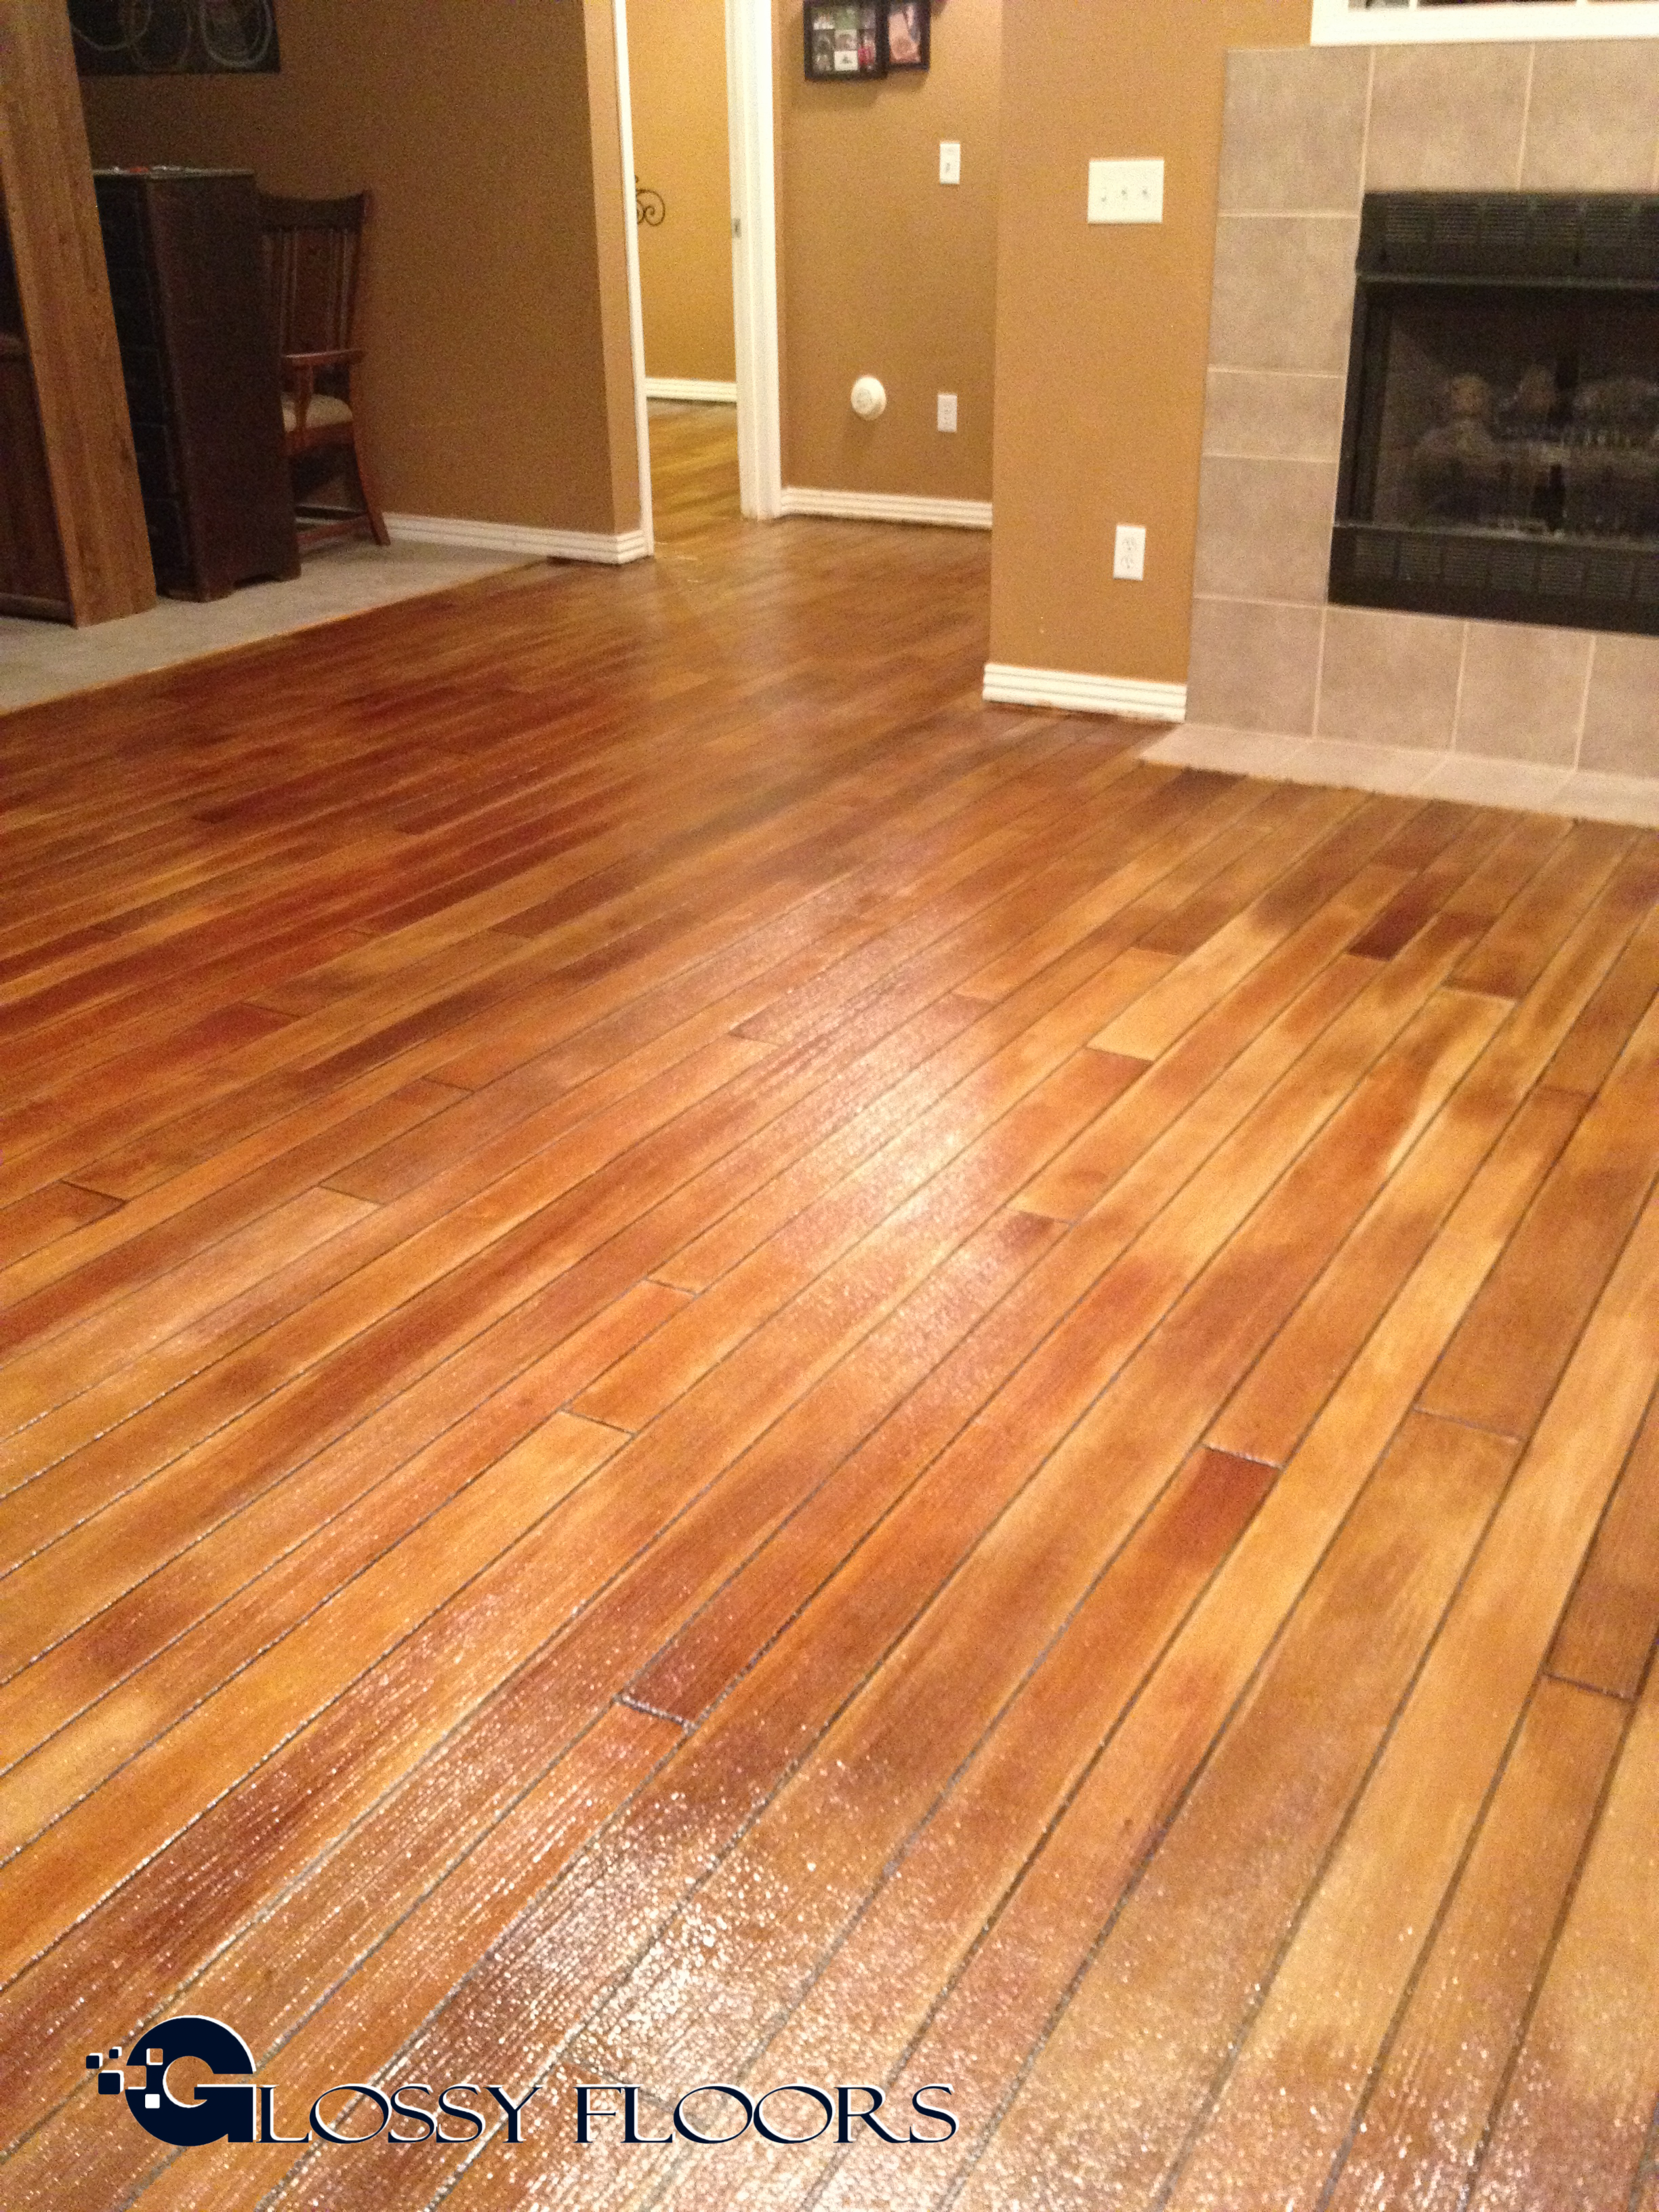 Concrete Wood Floors Concrete Floors That Look Like Wood Glossy Floors